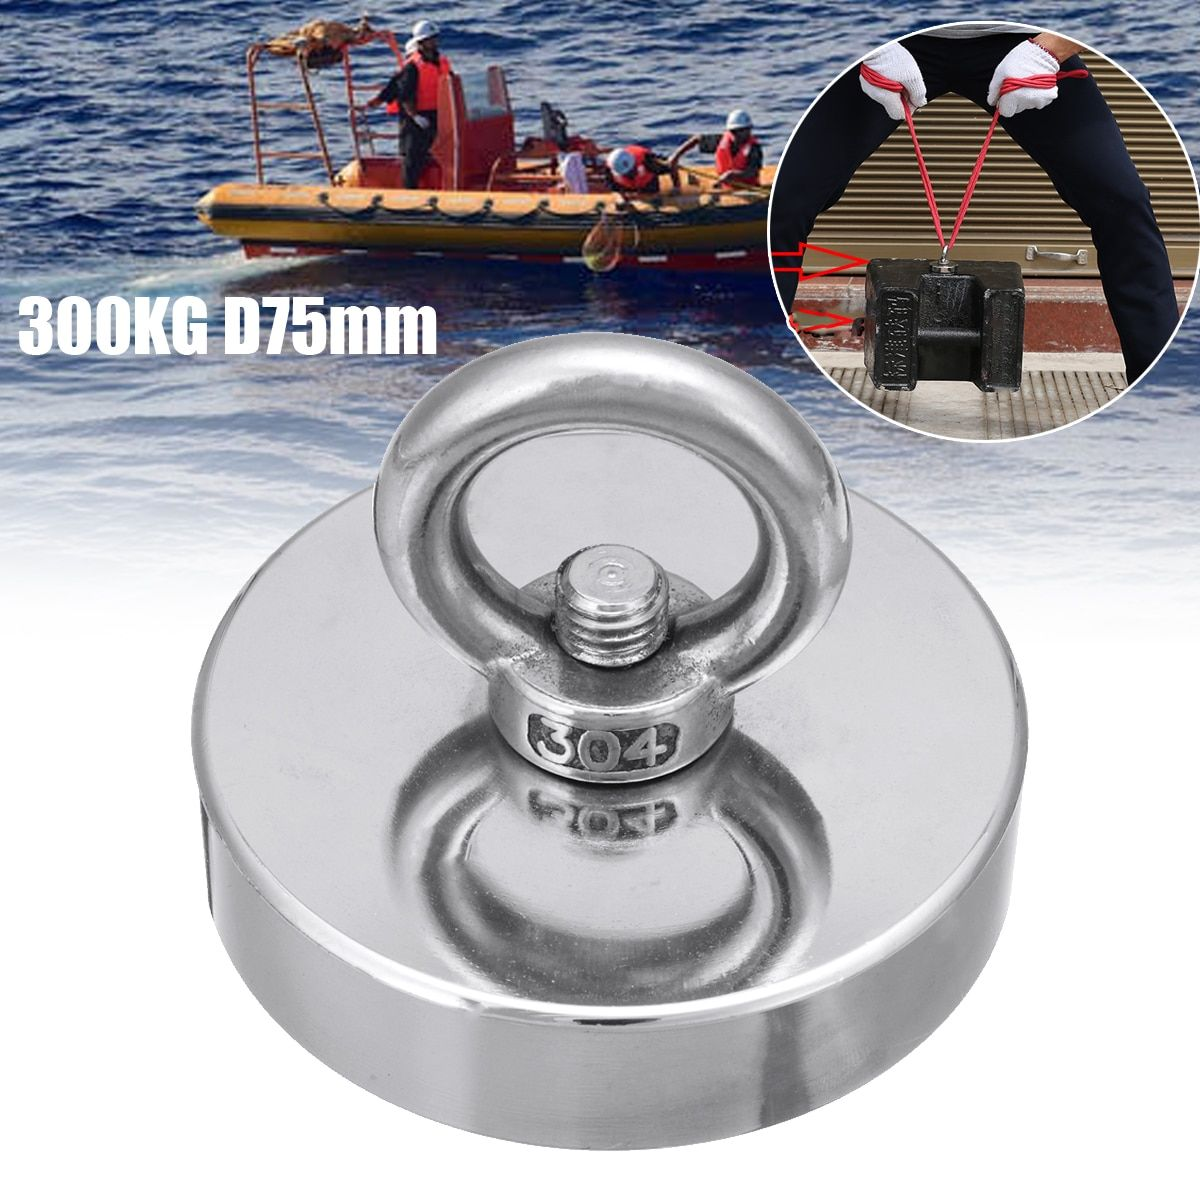 300KG D75mm Salvage Neodymium Magnet Fishing Salvage Recovery Retrieving Magnet Super Powerful Hole Circular Ring Hook